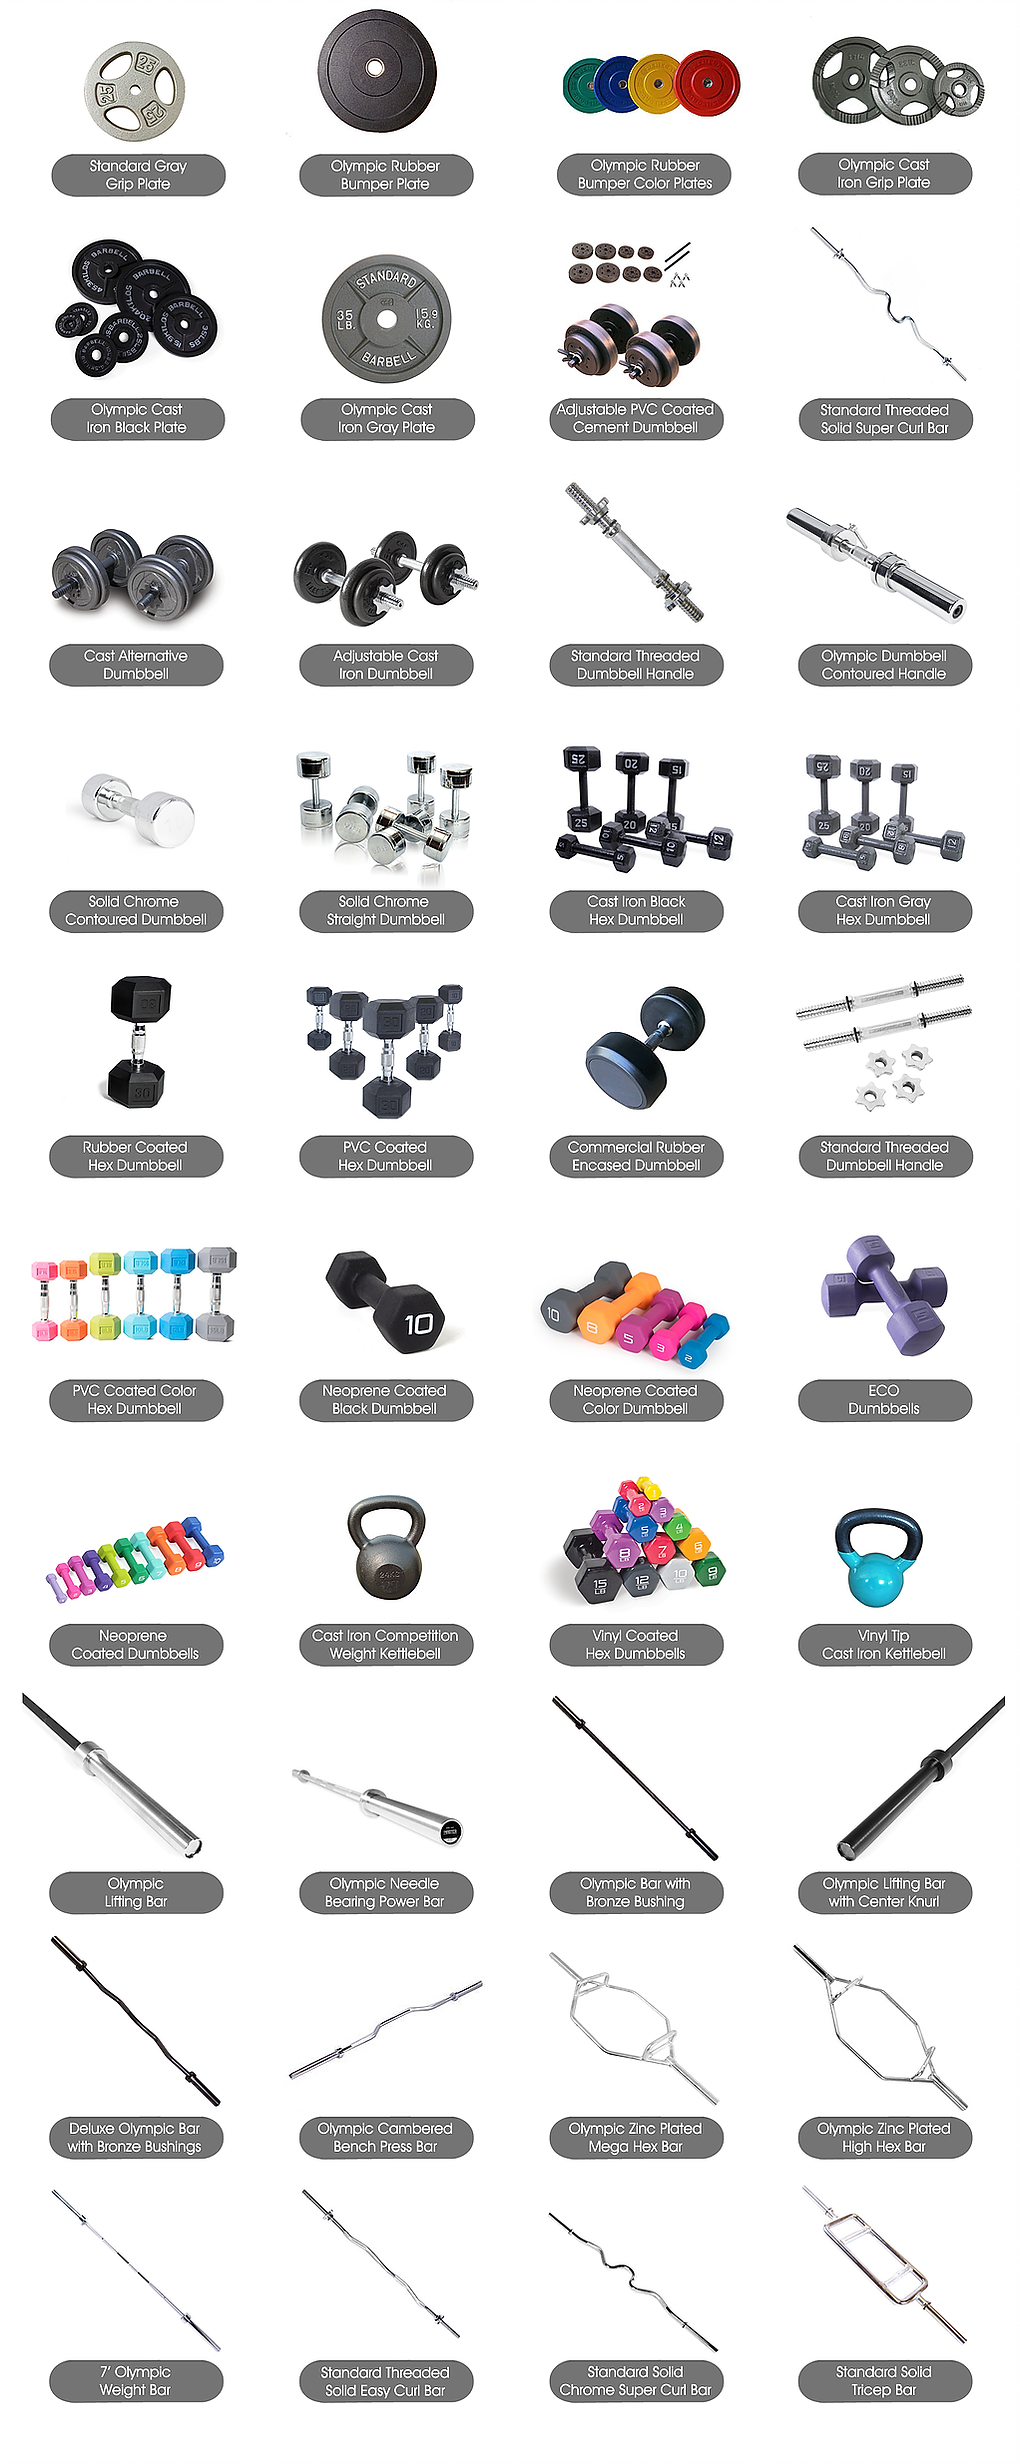 Weighs, Plates, Dumbbells, Kettebells Bars, and more